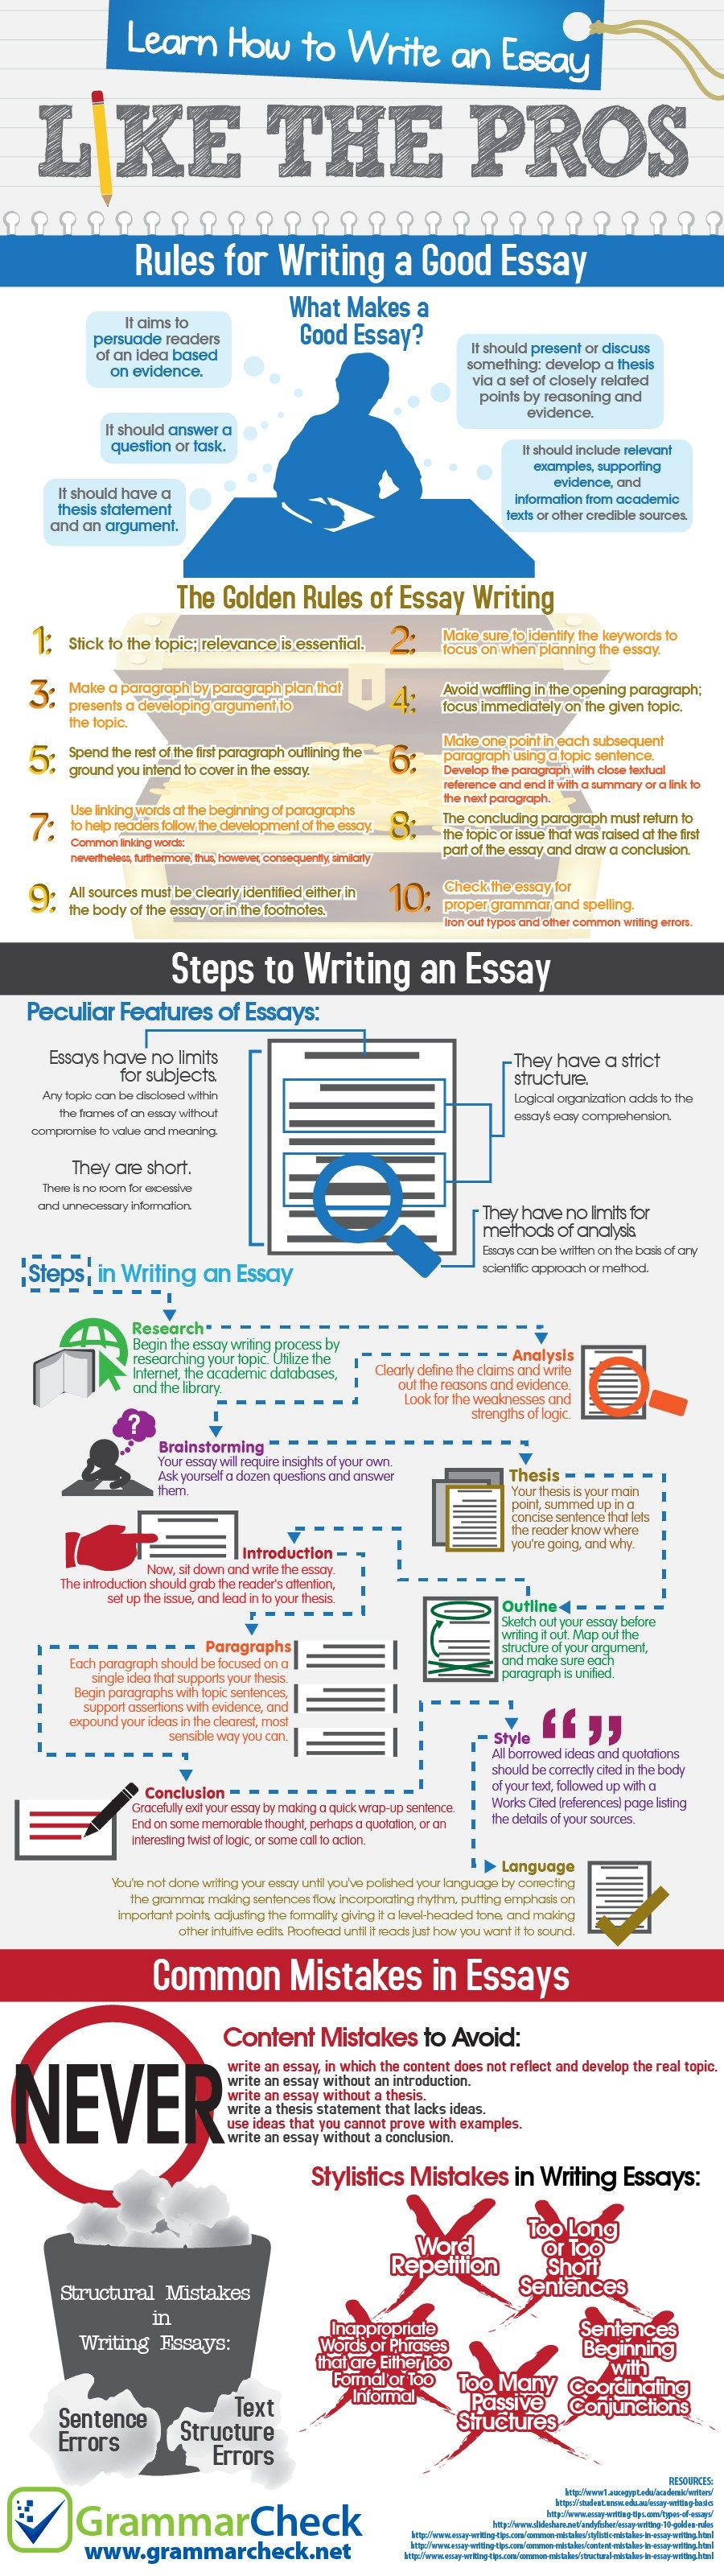 how to write an essay like a pro infographic school and school  how to write an essay like the pros infographic